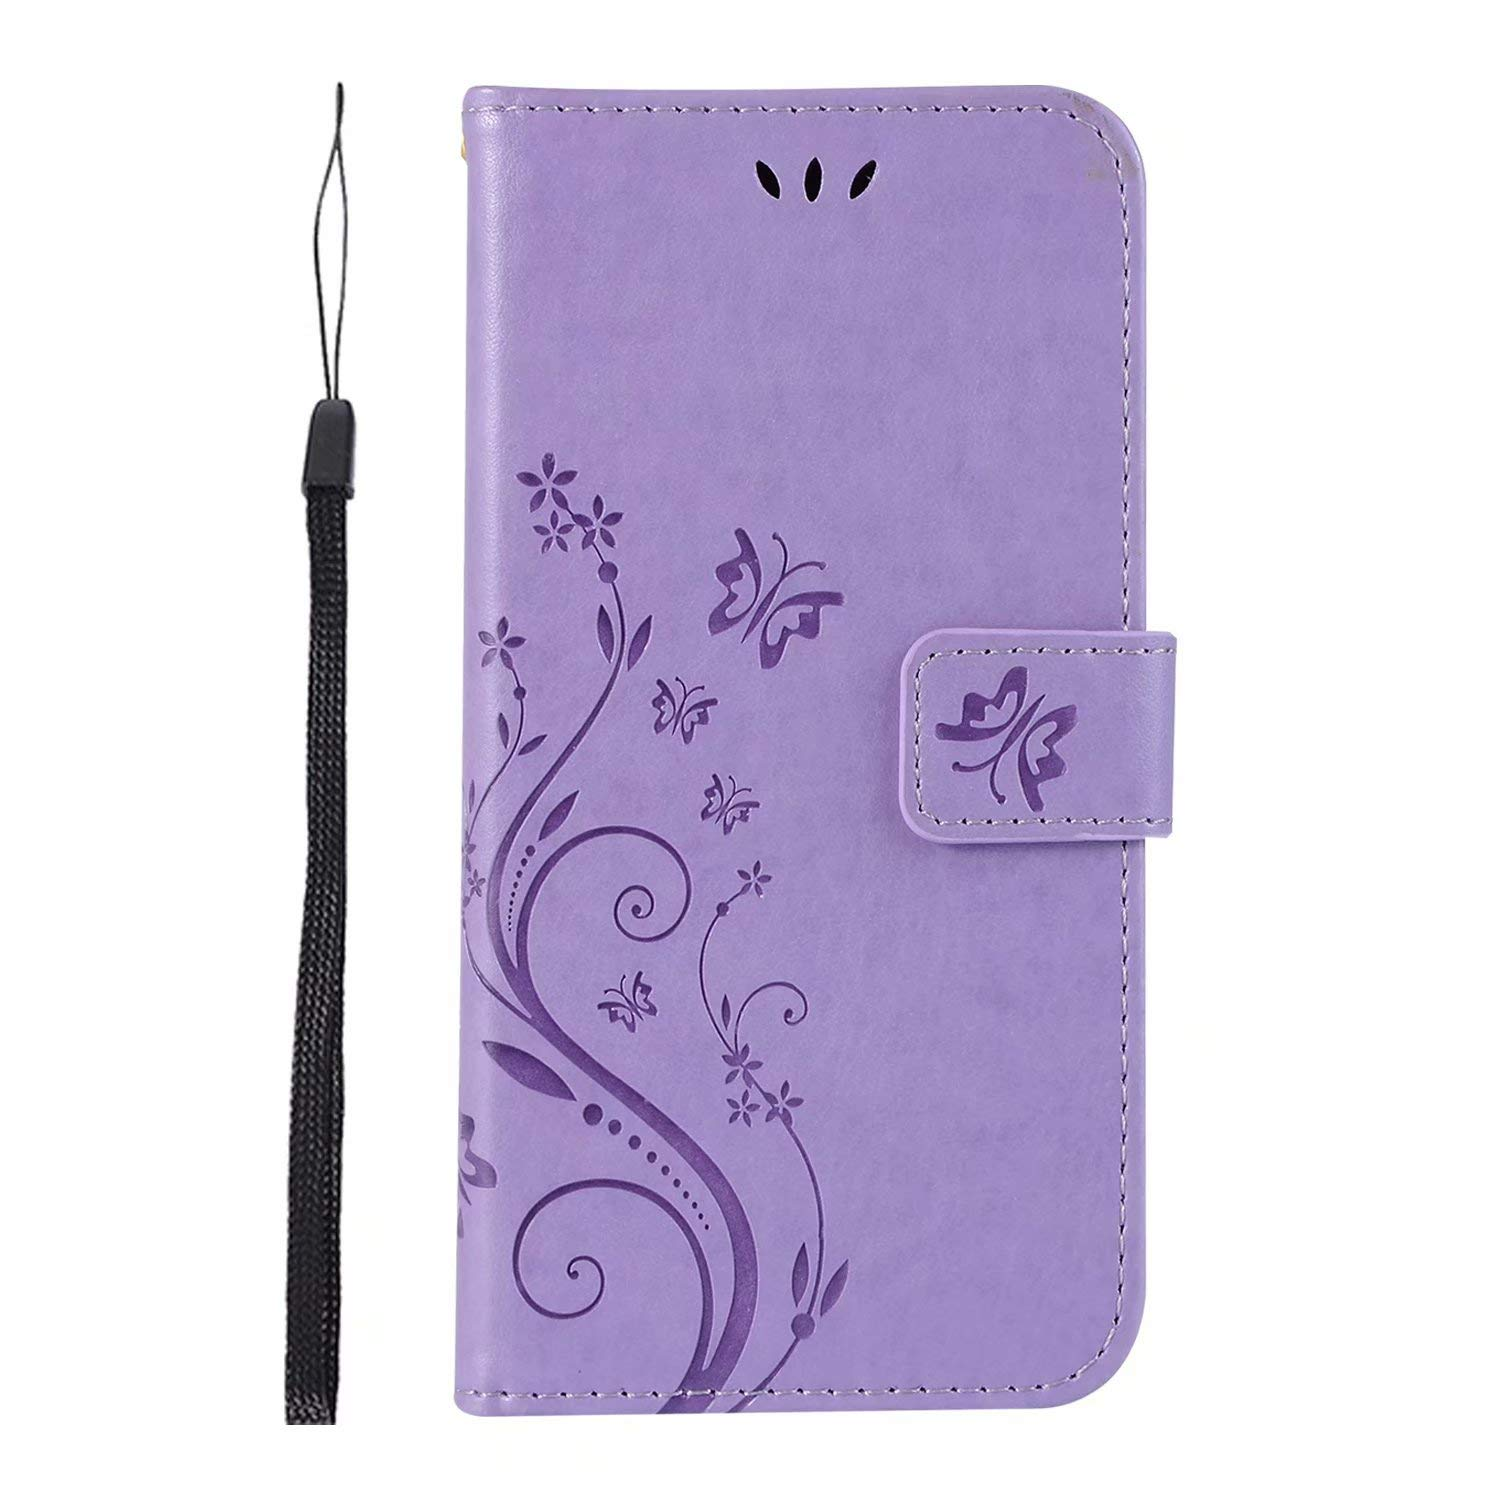 Wallet Case for Samsung Galaxy A8 2018/A530/A5 2018, Beautiful Book Style 3 Card Holder Embossed Butterfly Flower PU Leather Magnetic Flip Cover for Samsung Galaxy A8 2018 (Light Purple) BTJP